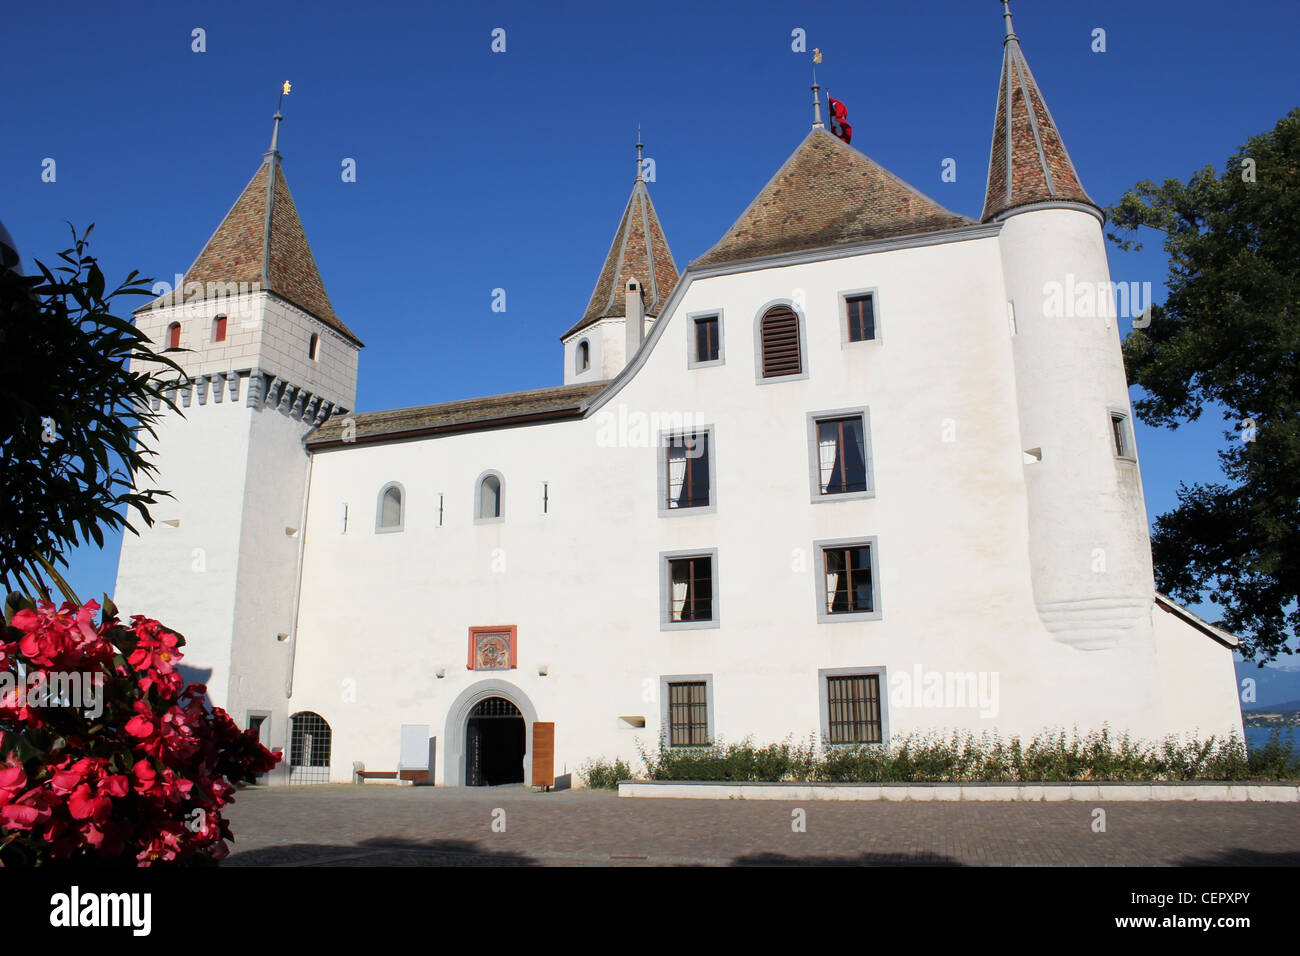 Facade and entrance of the white old castle in Nyon, Switzerland. - Stock Image